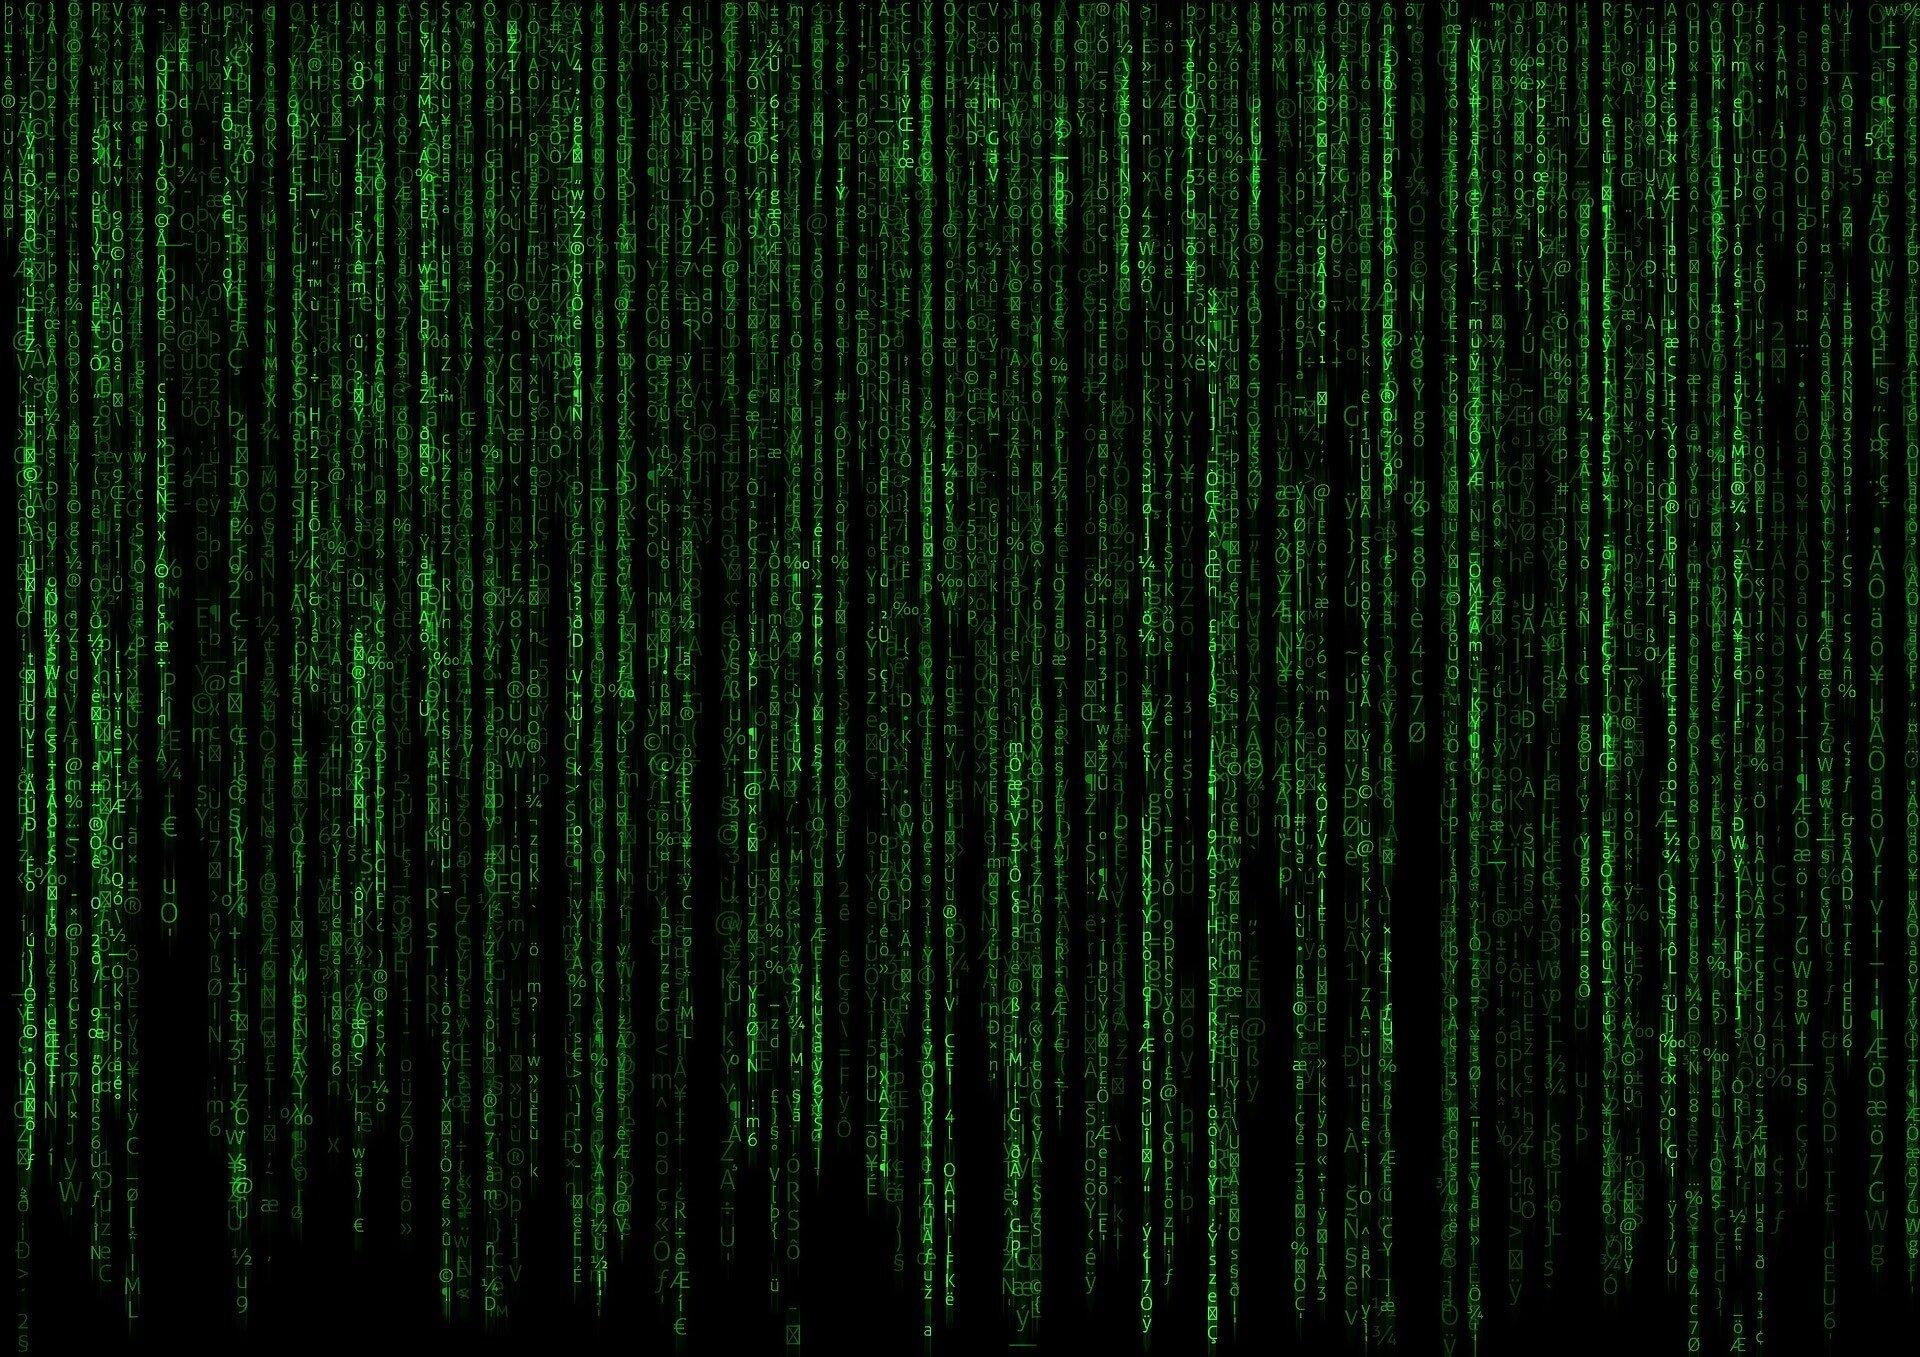 Data illustration with green text on black background